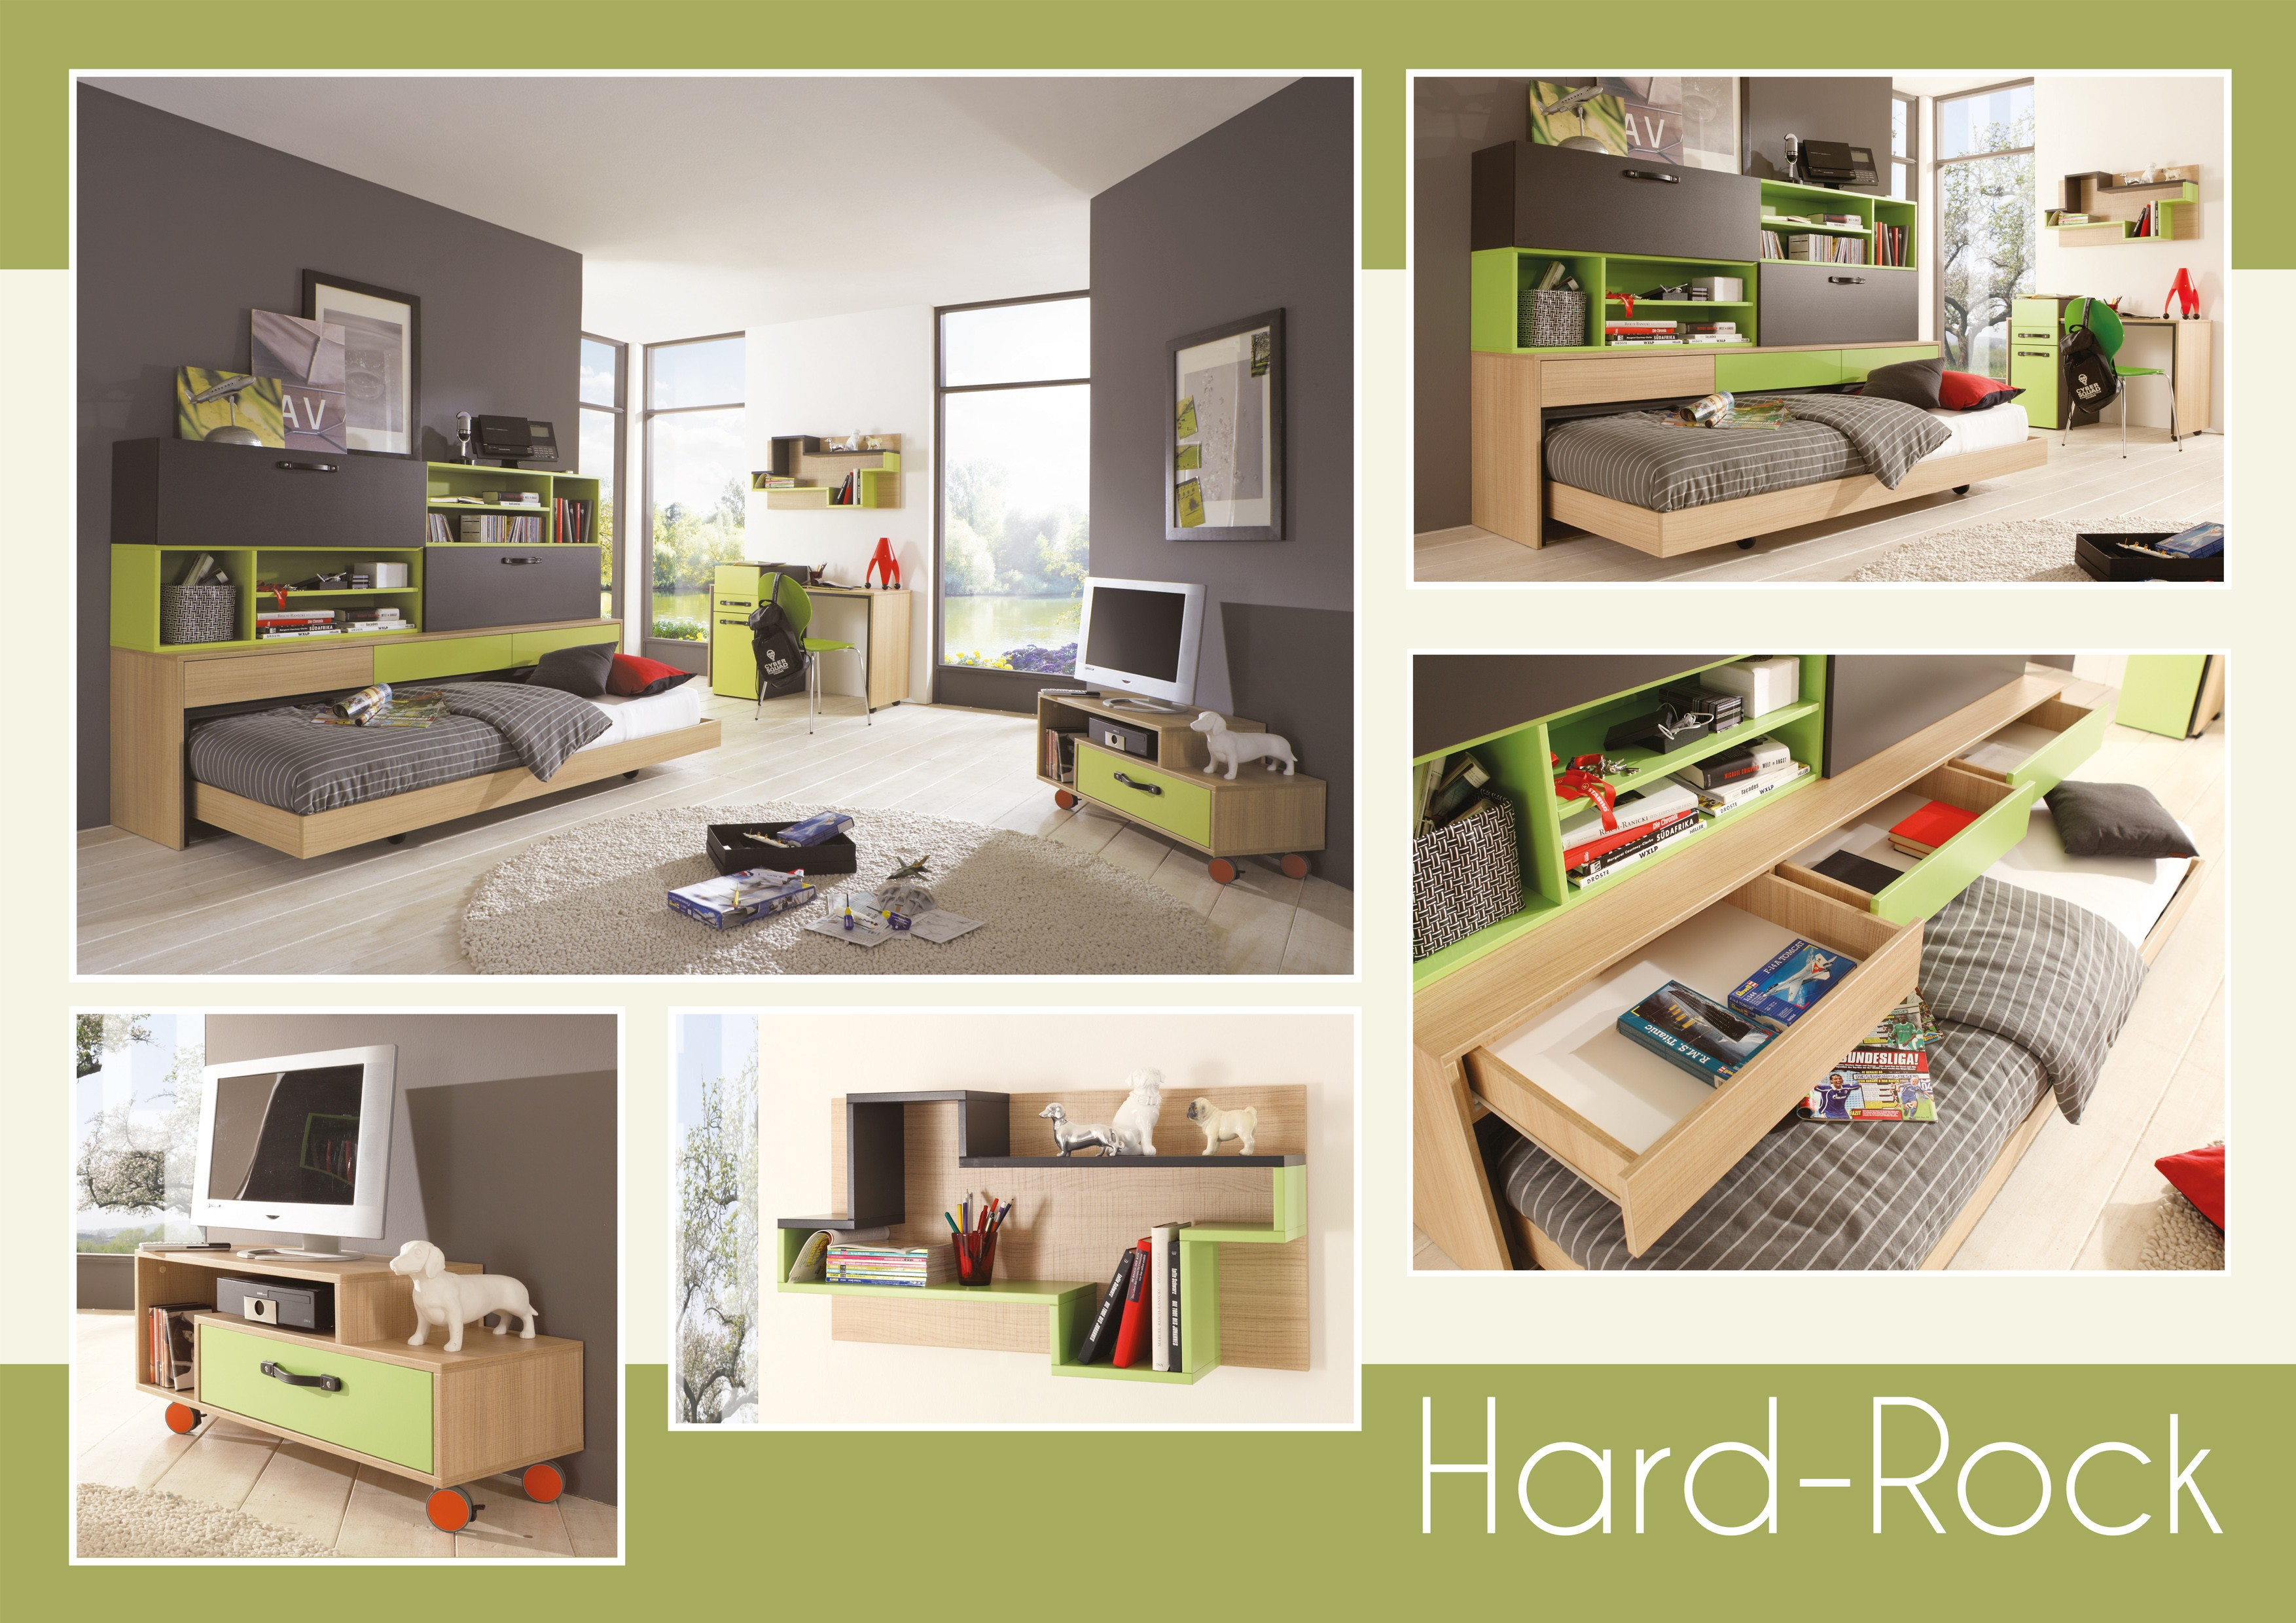 jugendzimmer gr n anthrazit hellbraun h c m bel. Black Bedroom Furniture Sets. Home Design Ideas